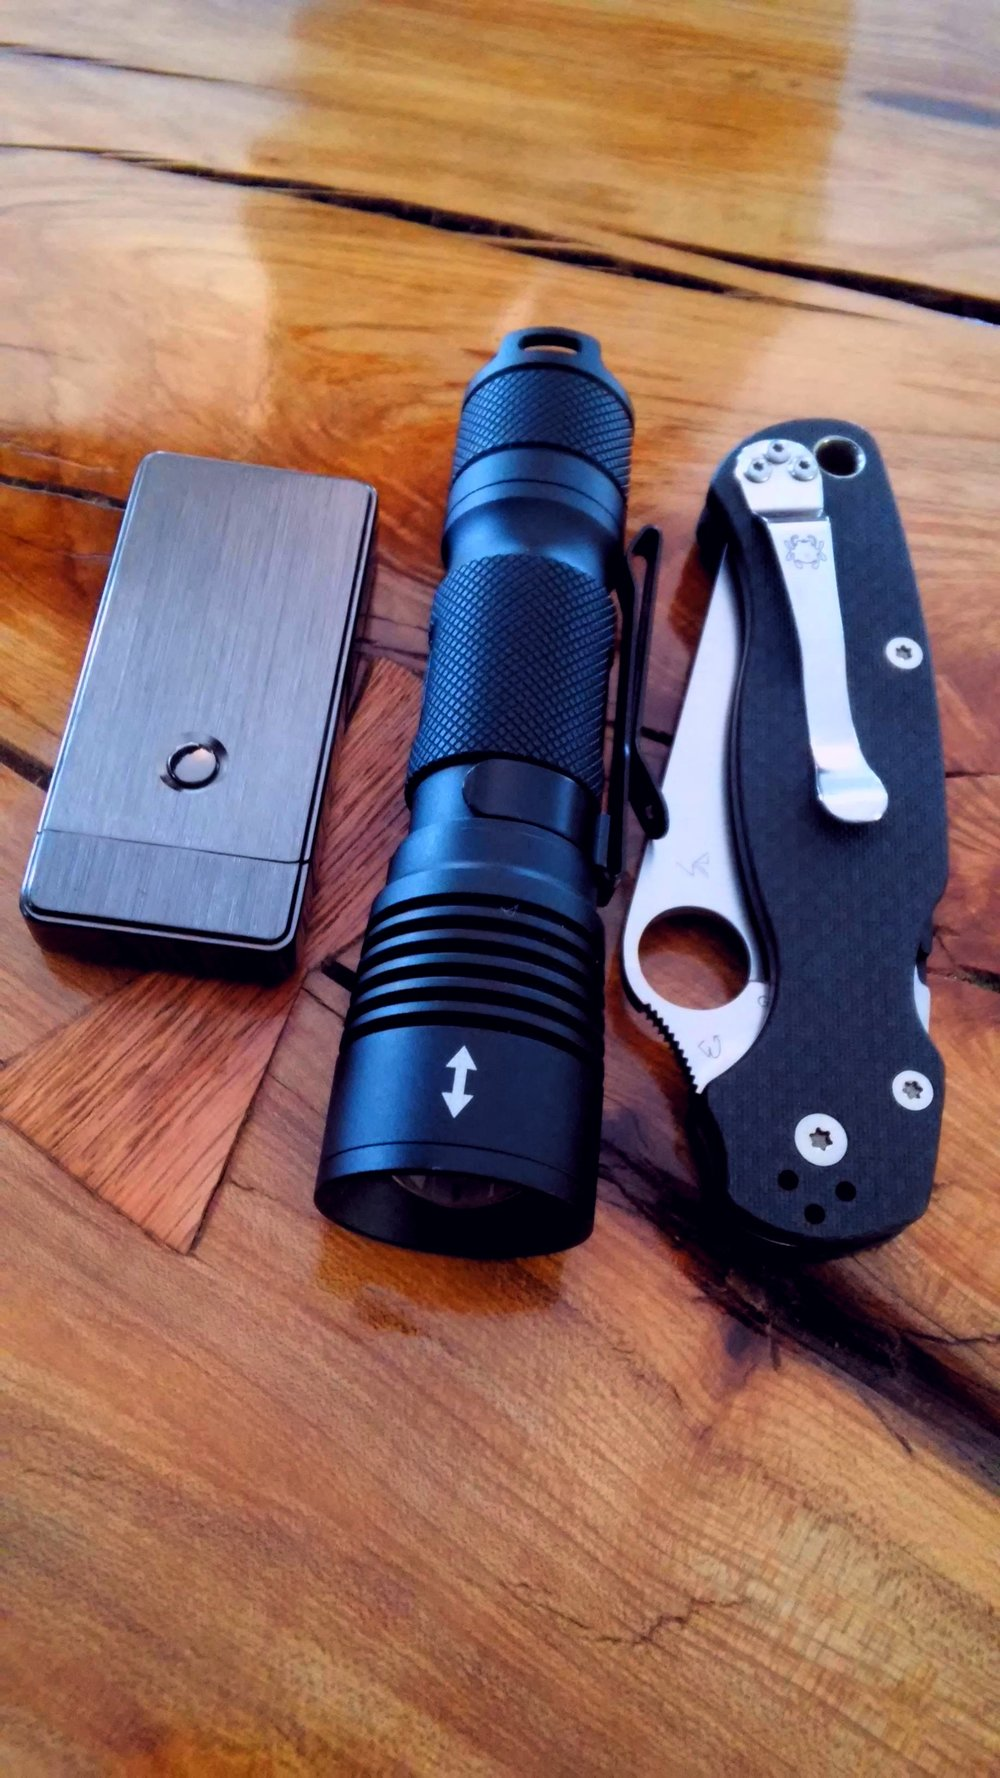 100Kcd Zoomie, Carbon Fiber S90v Spyderco Paramilitary2, Tesla lighter